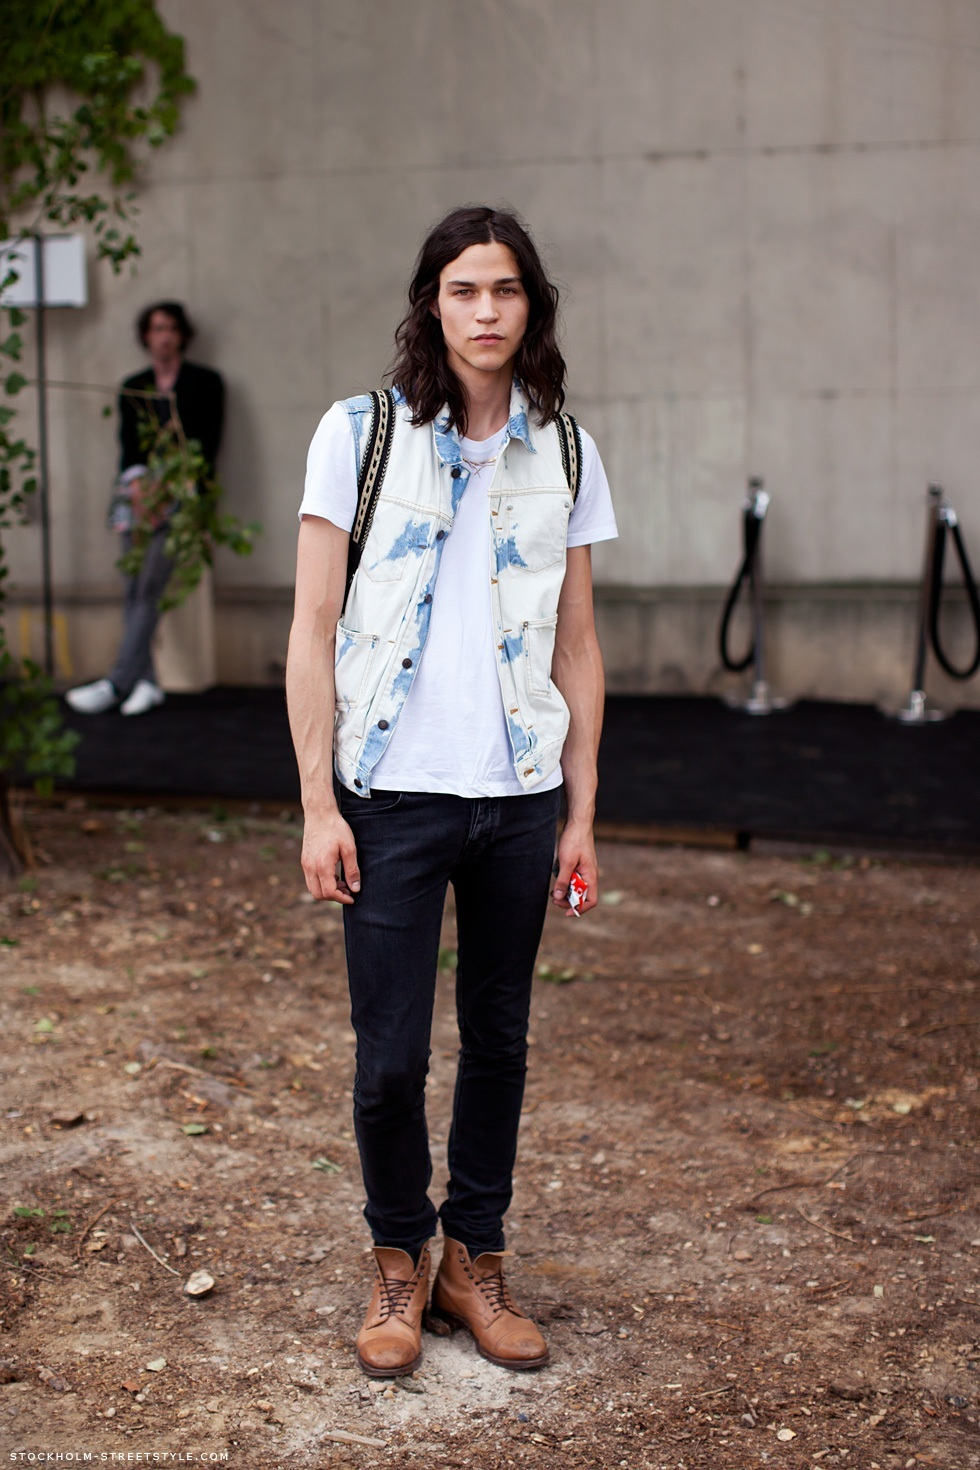 miles-mcmillan-shared-picture-220198138.jpg